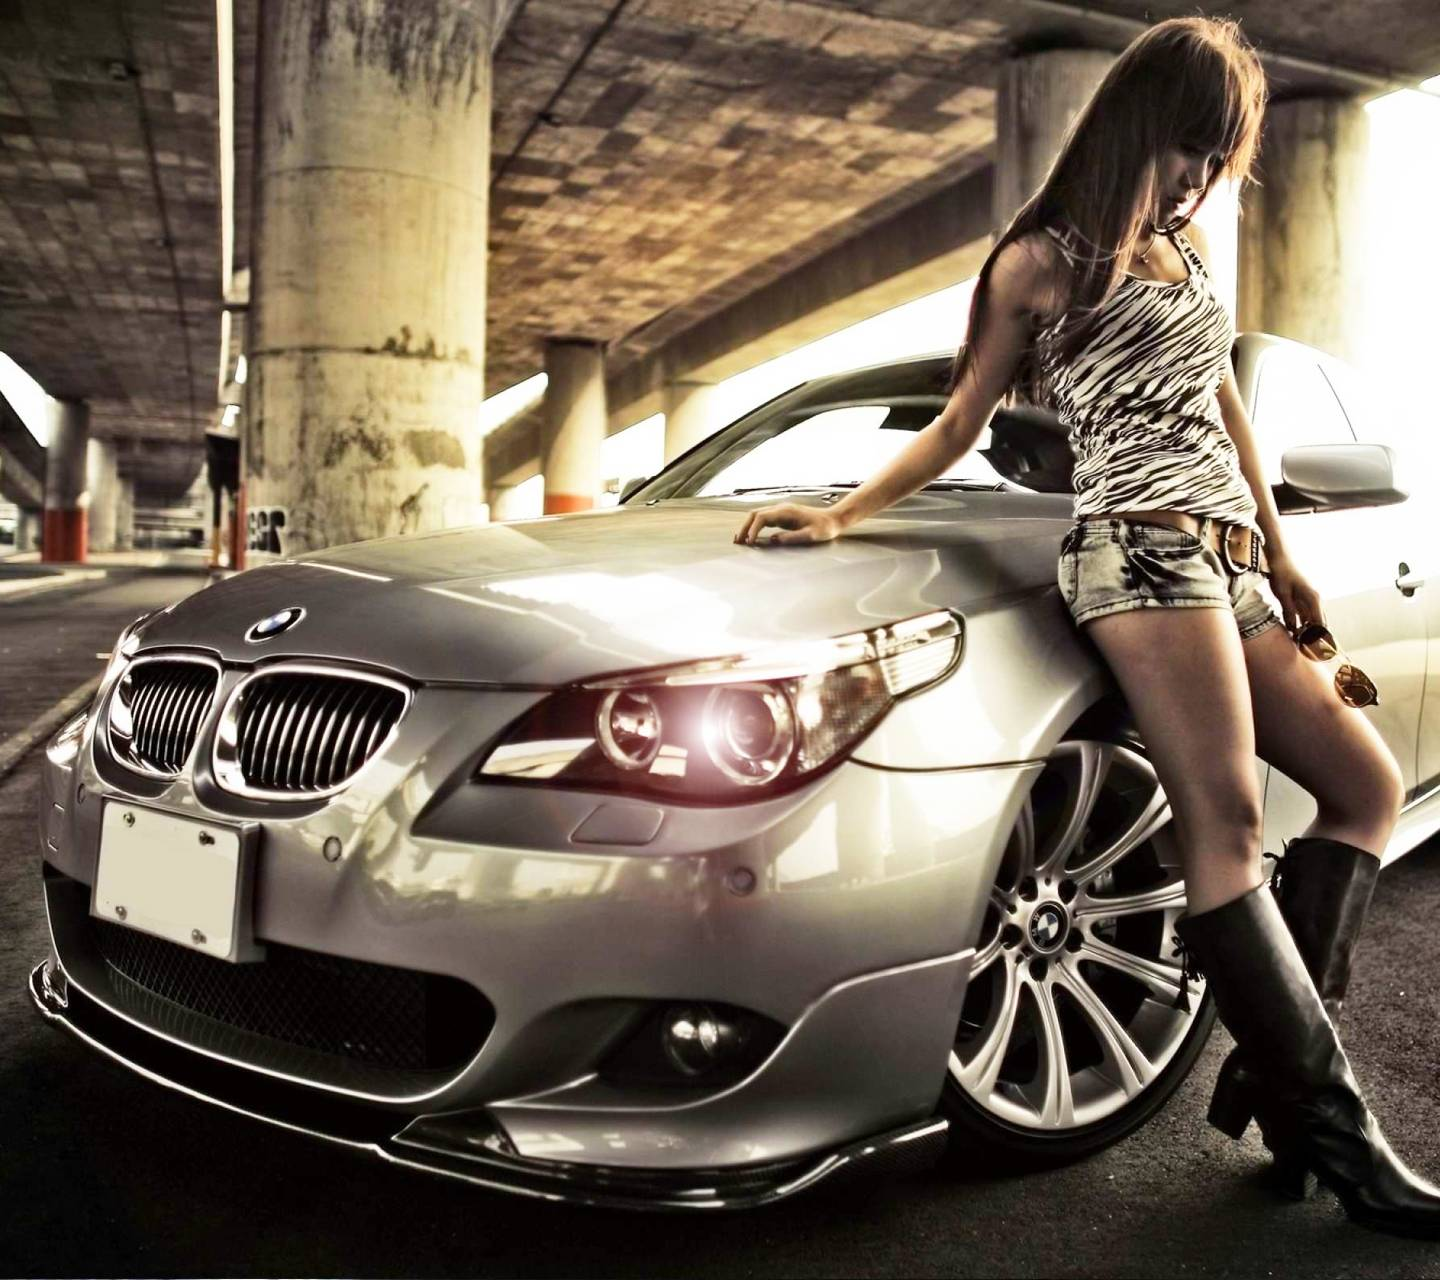 Bmw Car Wallpaper: Bmw Girl Wallpaper By Ashu_Astar